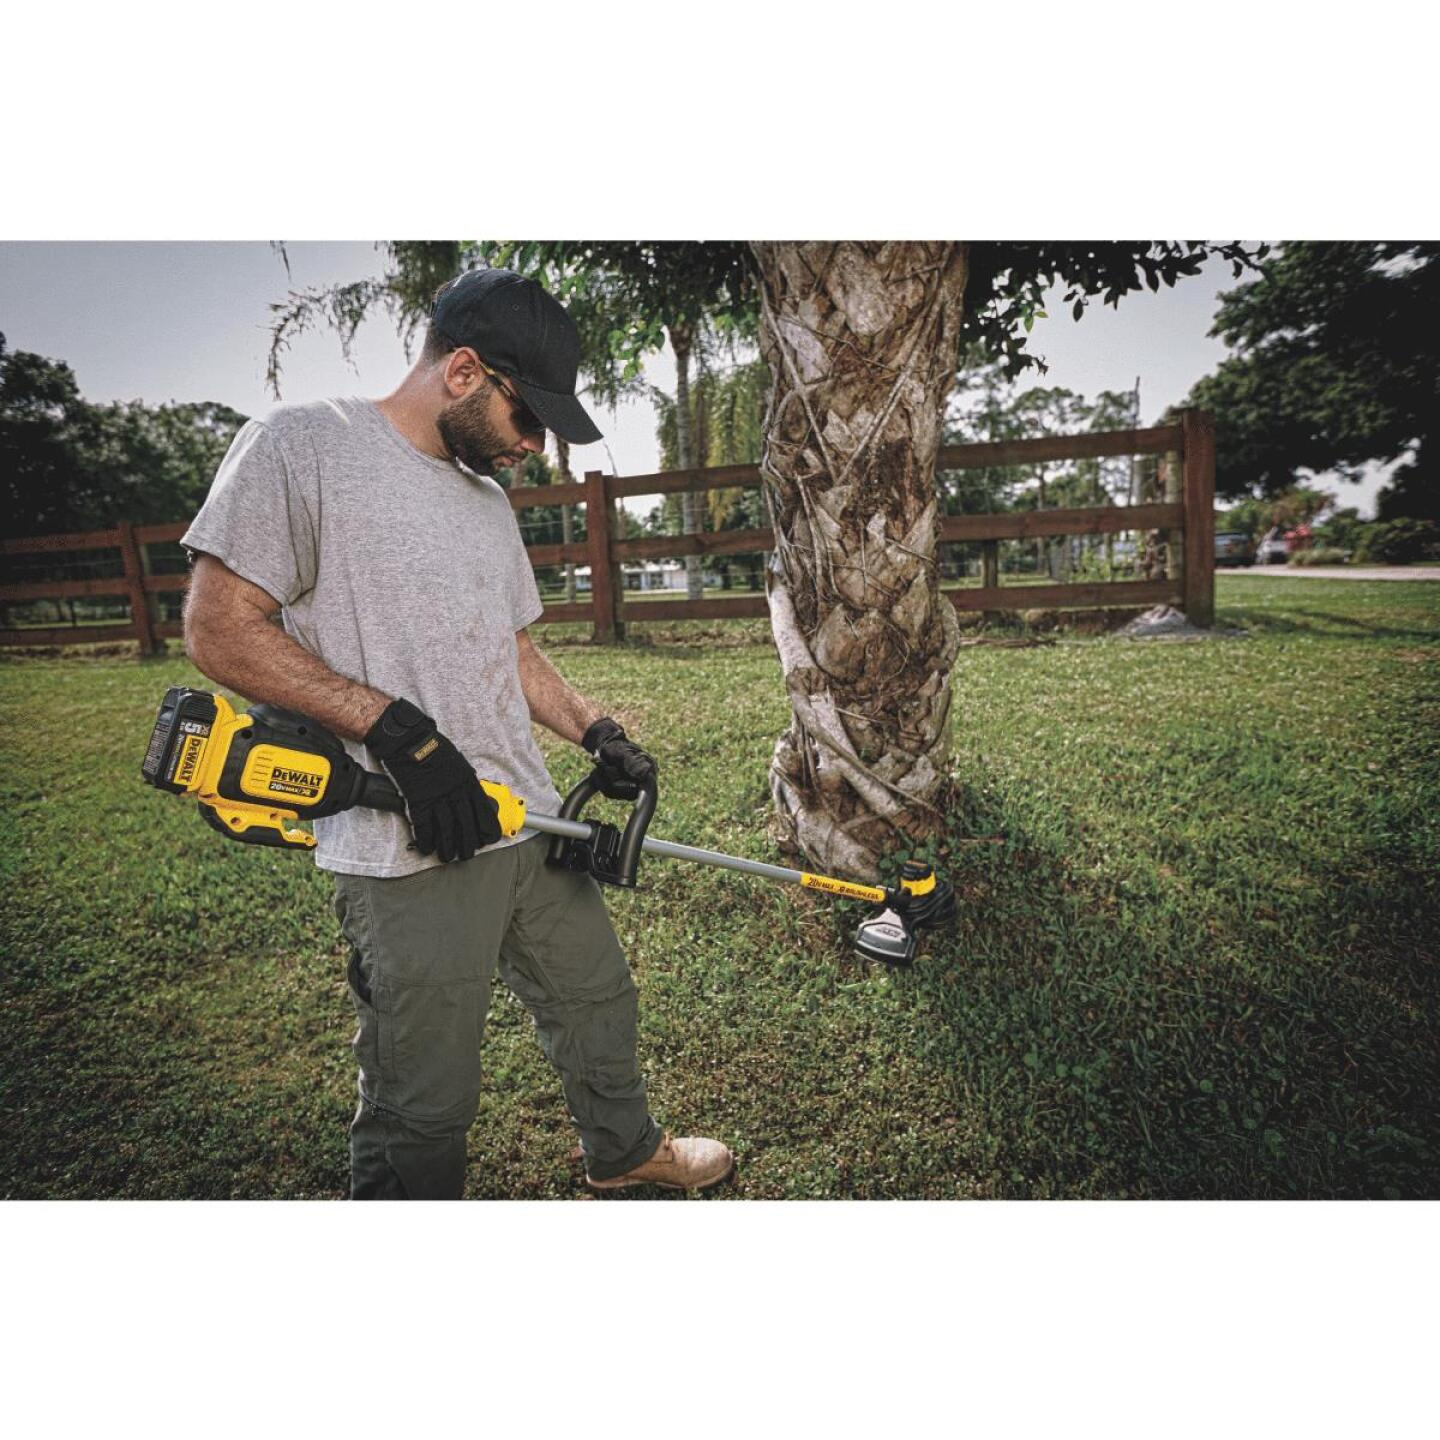 DeWalt 20V MAX 13 In. Lithium Ion Straight Cordless String Trimmer Image 2